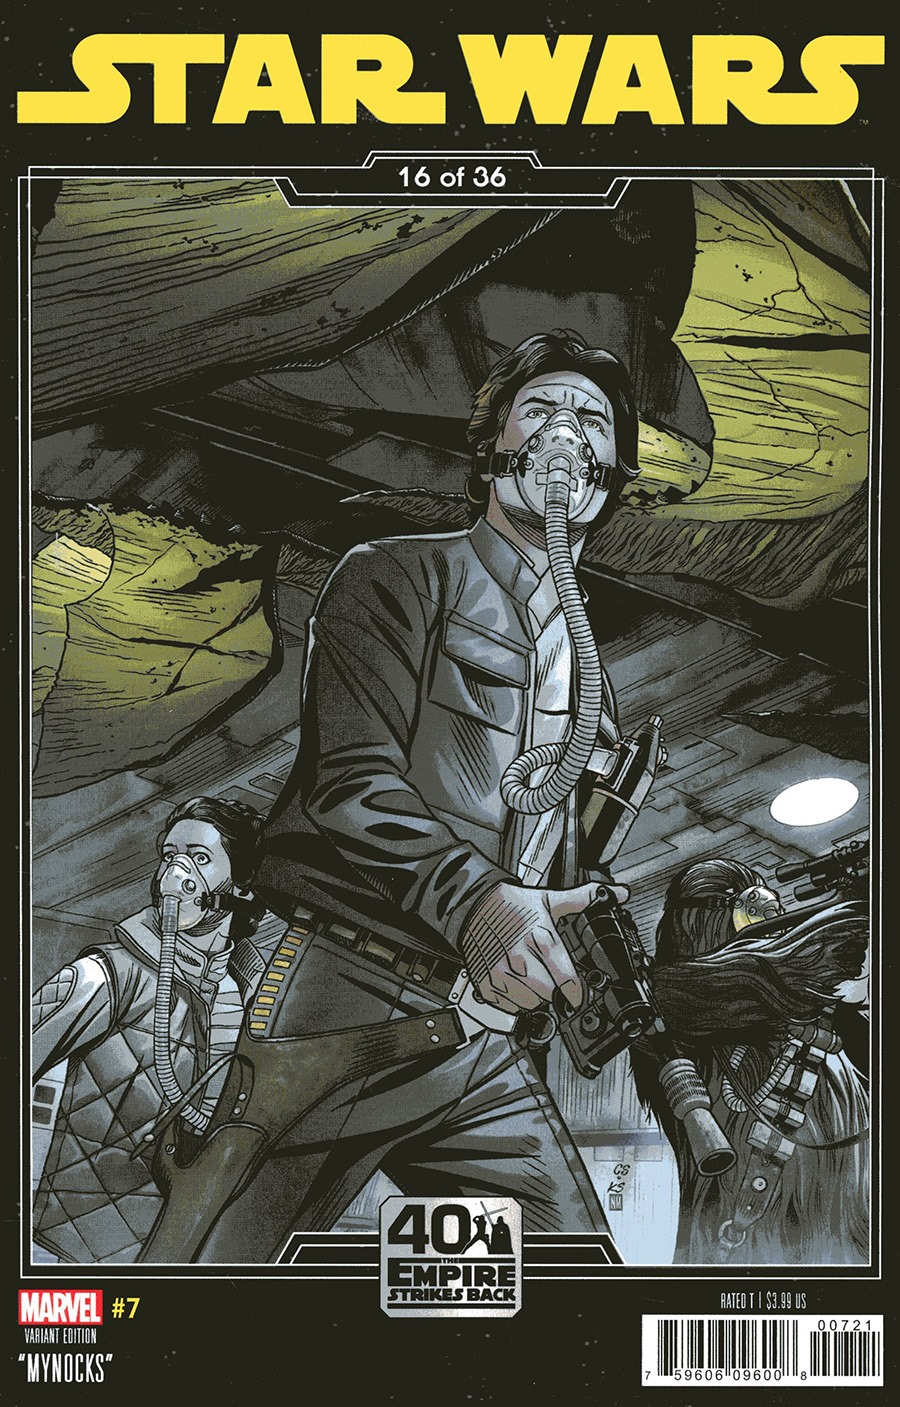 Star Wars #7 (Chris Sprouse The Empire Strikes Back Variant Cover) (07.10.2020)